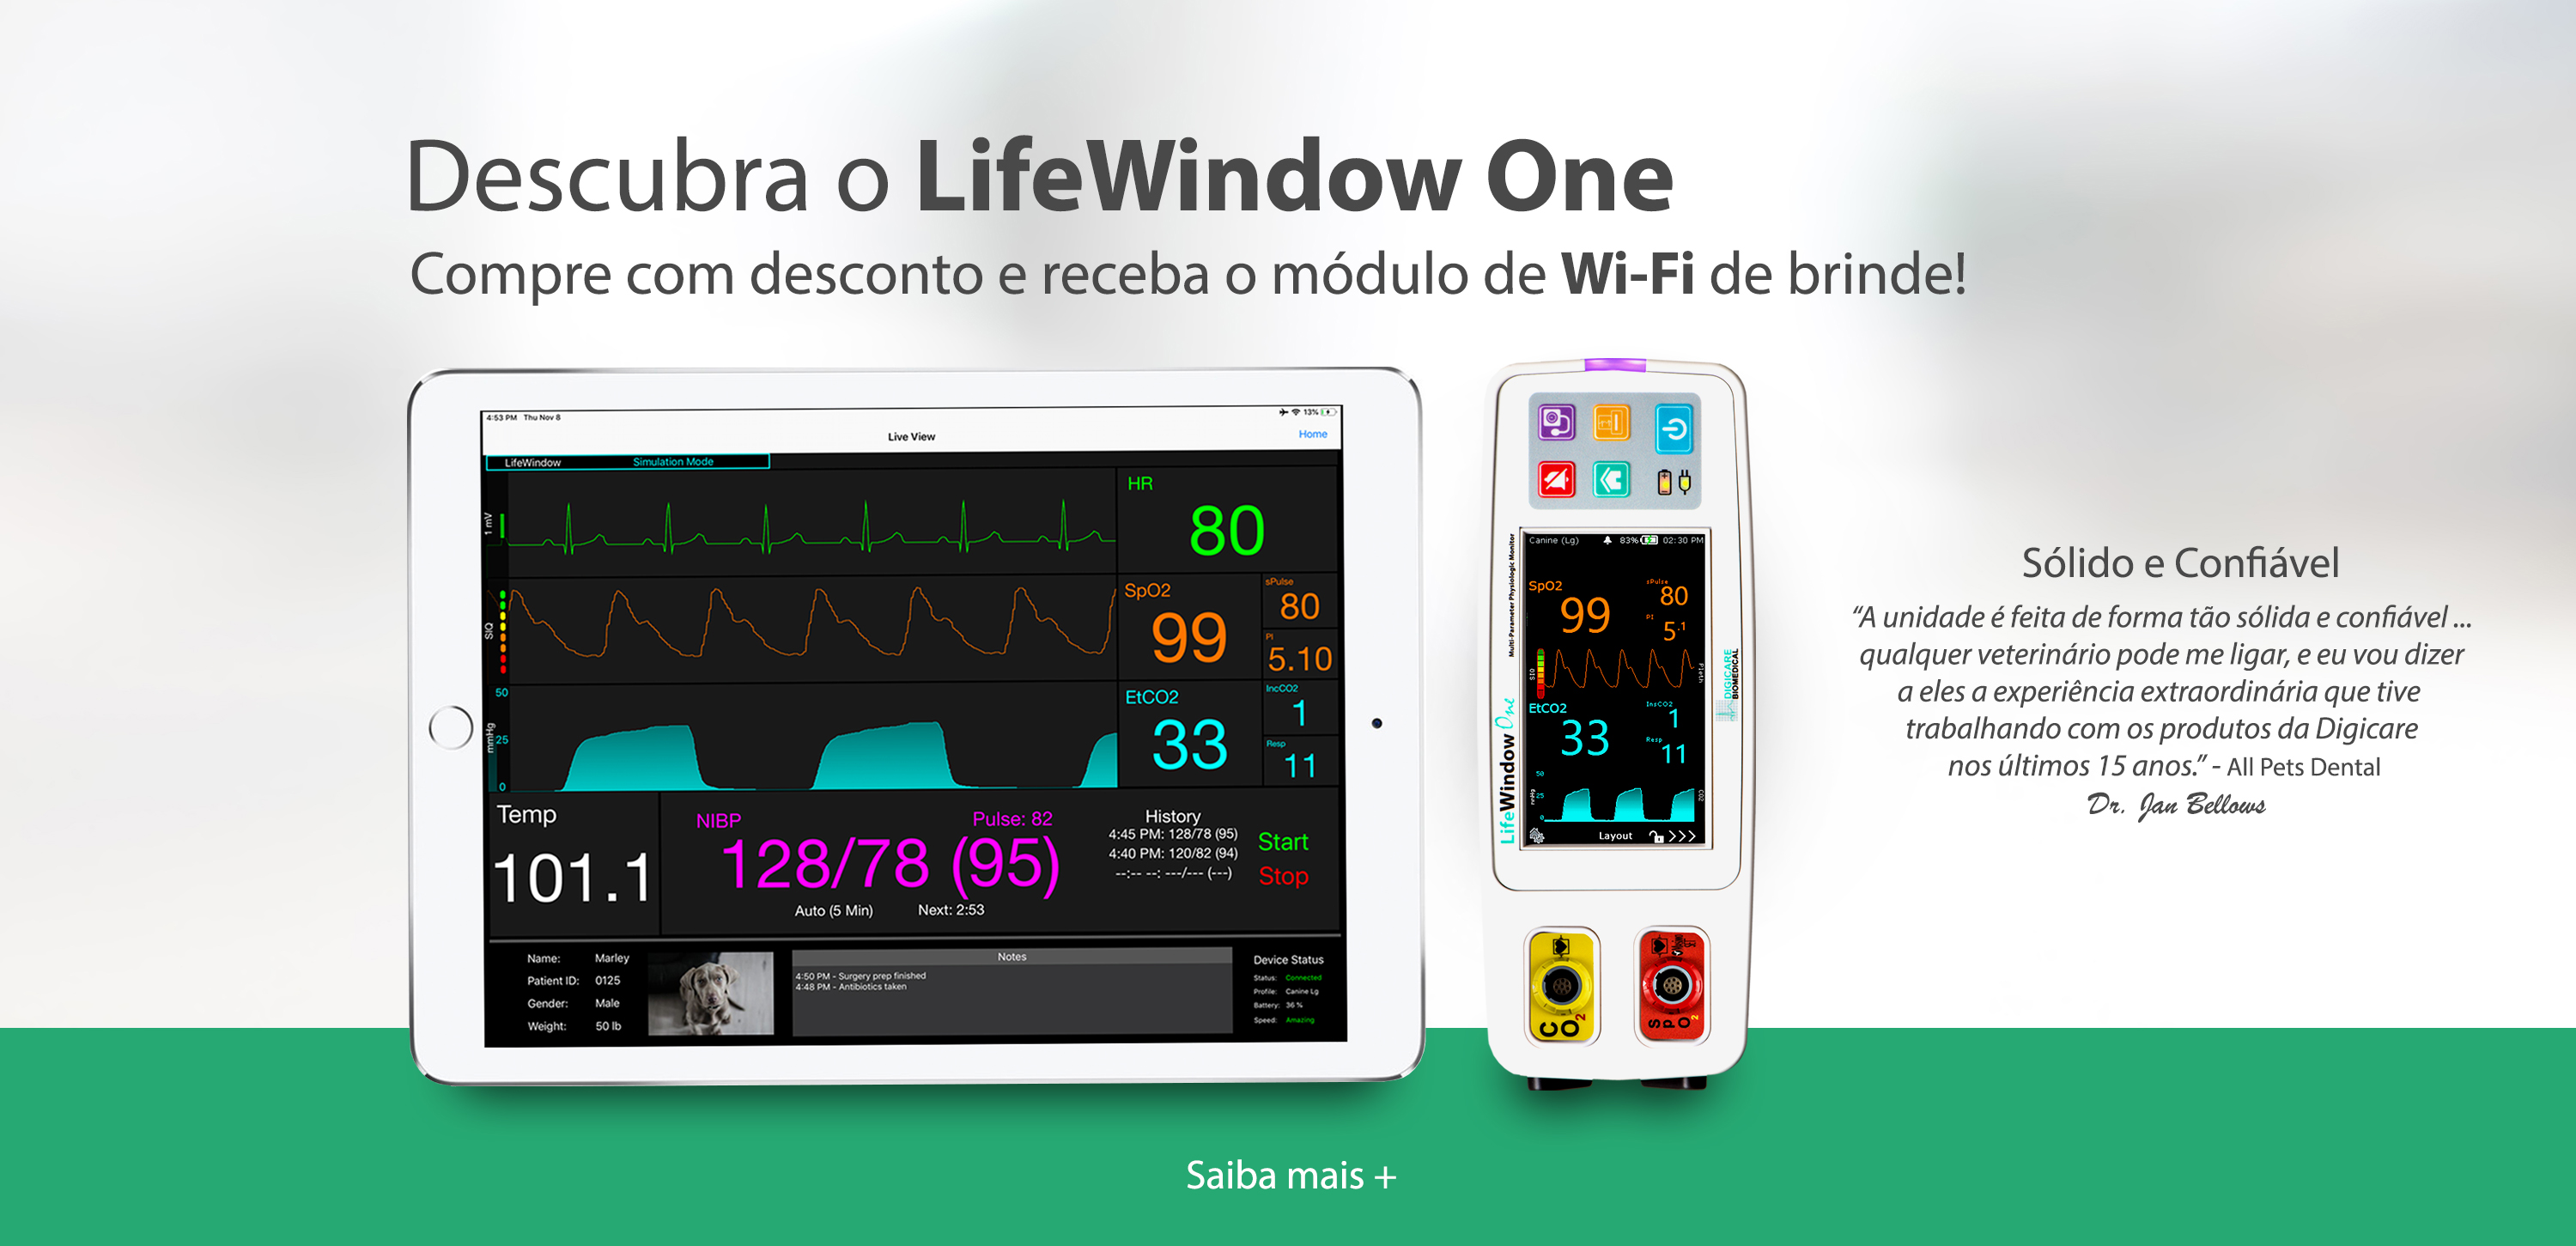 LifeWindow One